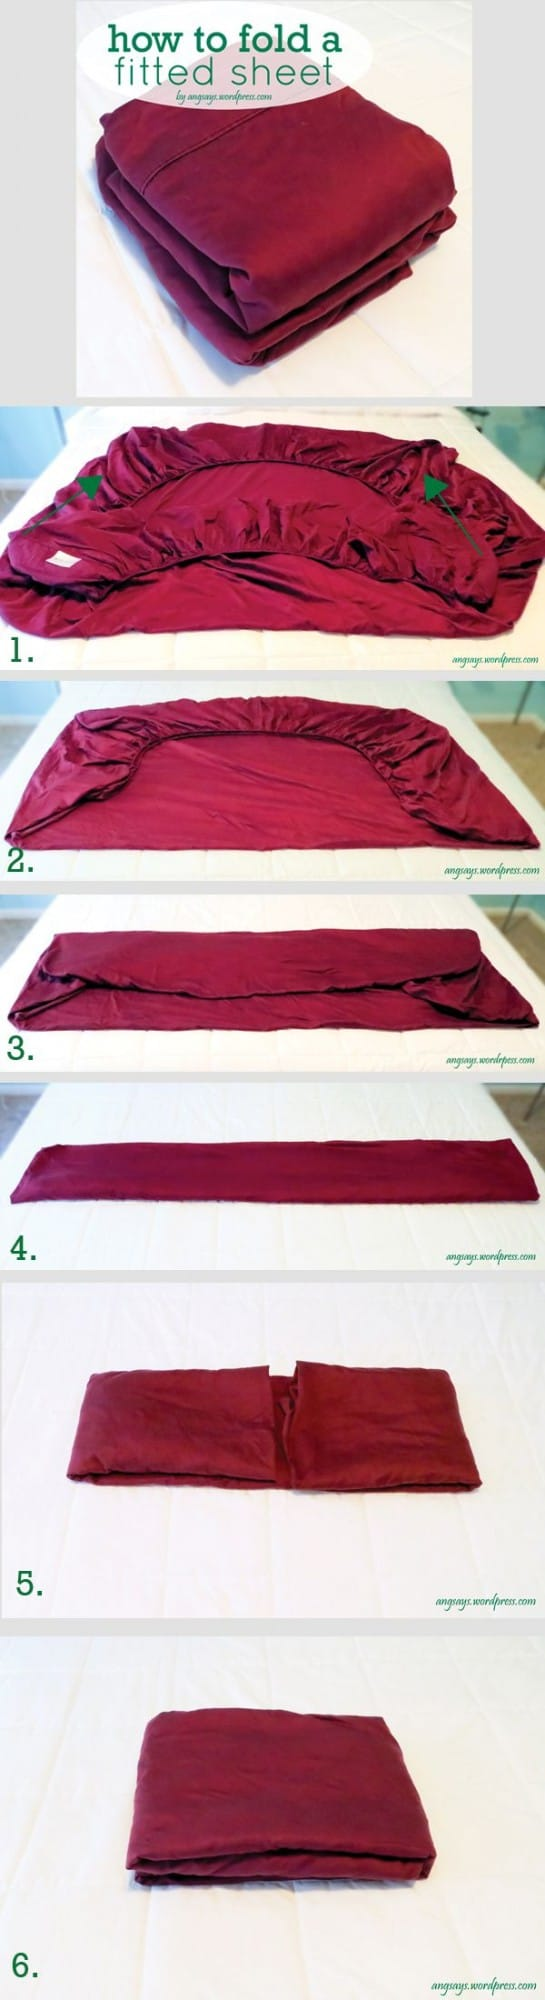 How To Fold A Fitted Sheet Easy Instructions The Whoot